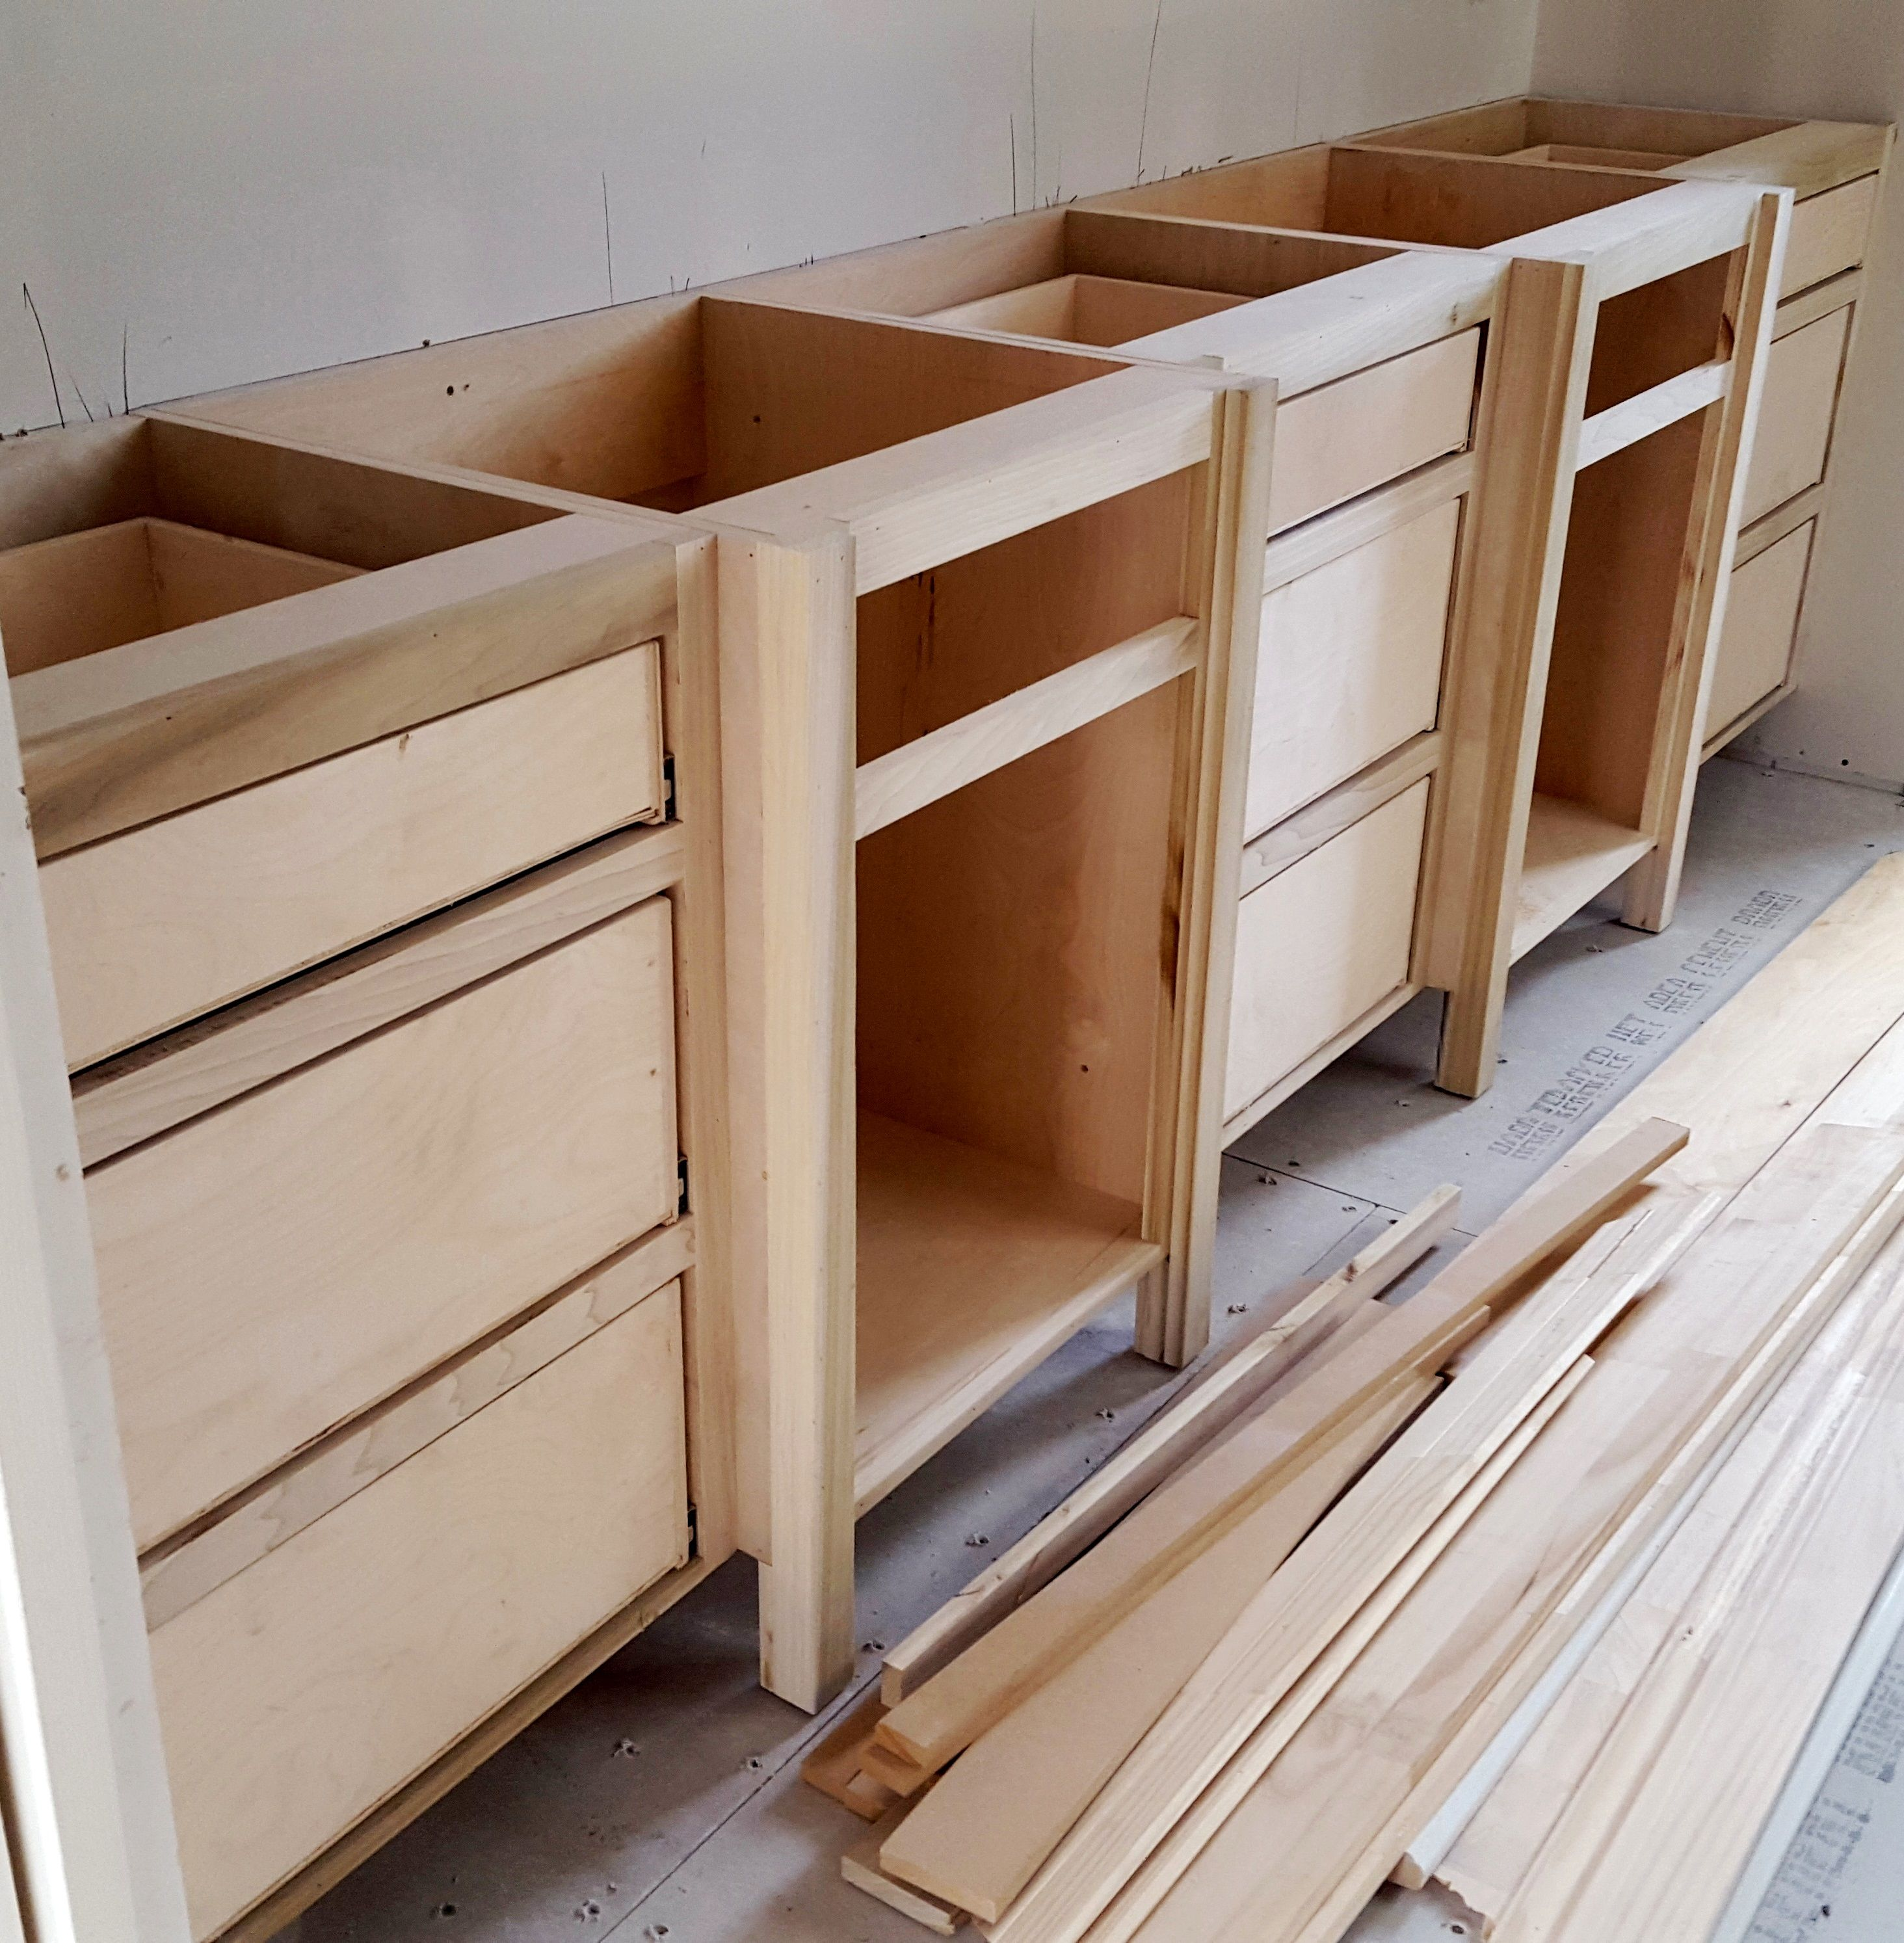 Typical Job Built Bathroom Vanity Cabinets In Progress In This Application We Had 10 L Kitchen Cabinets With Legs Custom Cabinets Bathroom Vanity Cabinets